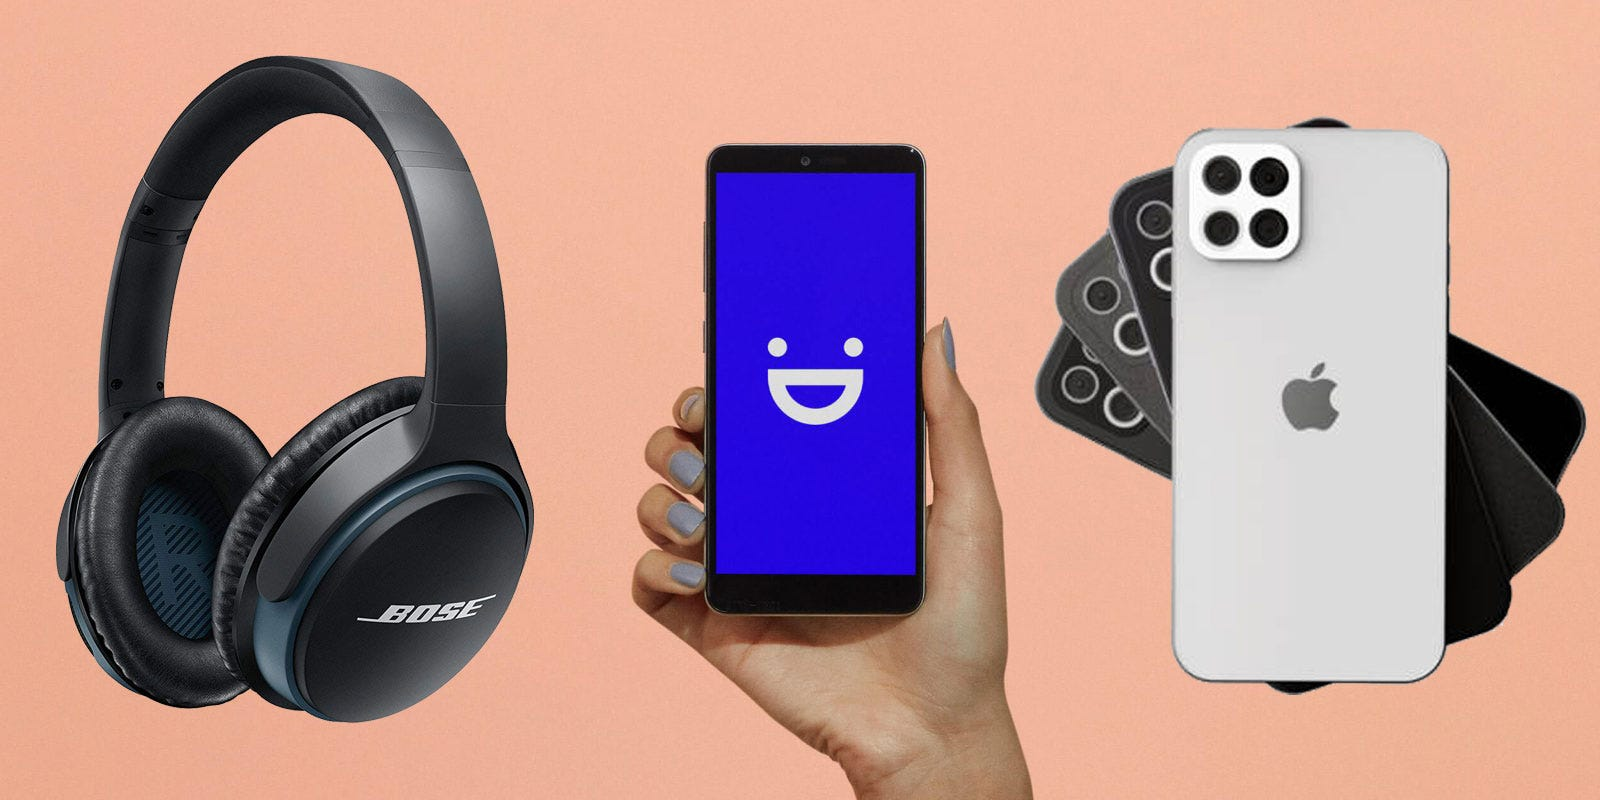 You can get a free pair of Bose headphones when you purchase the new iPhone 12